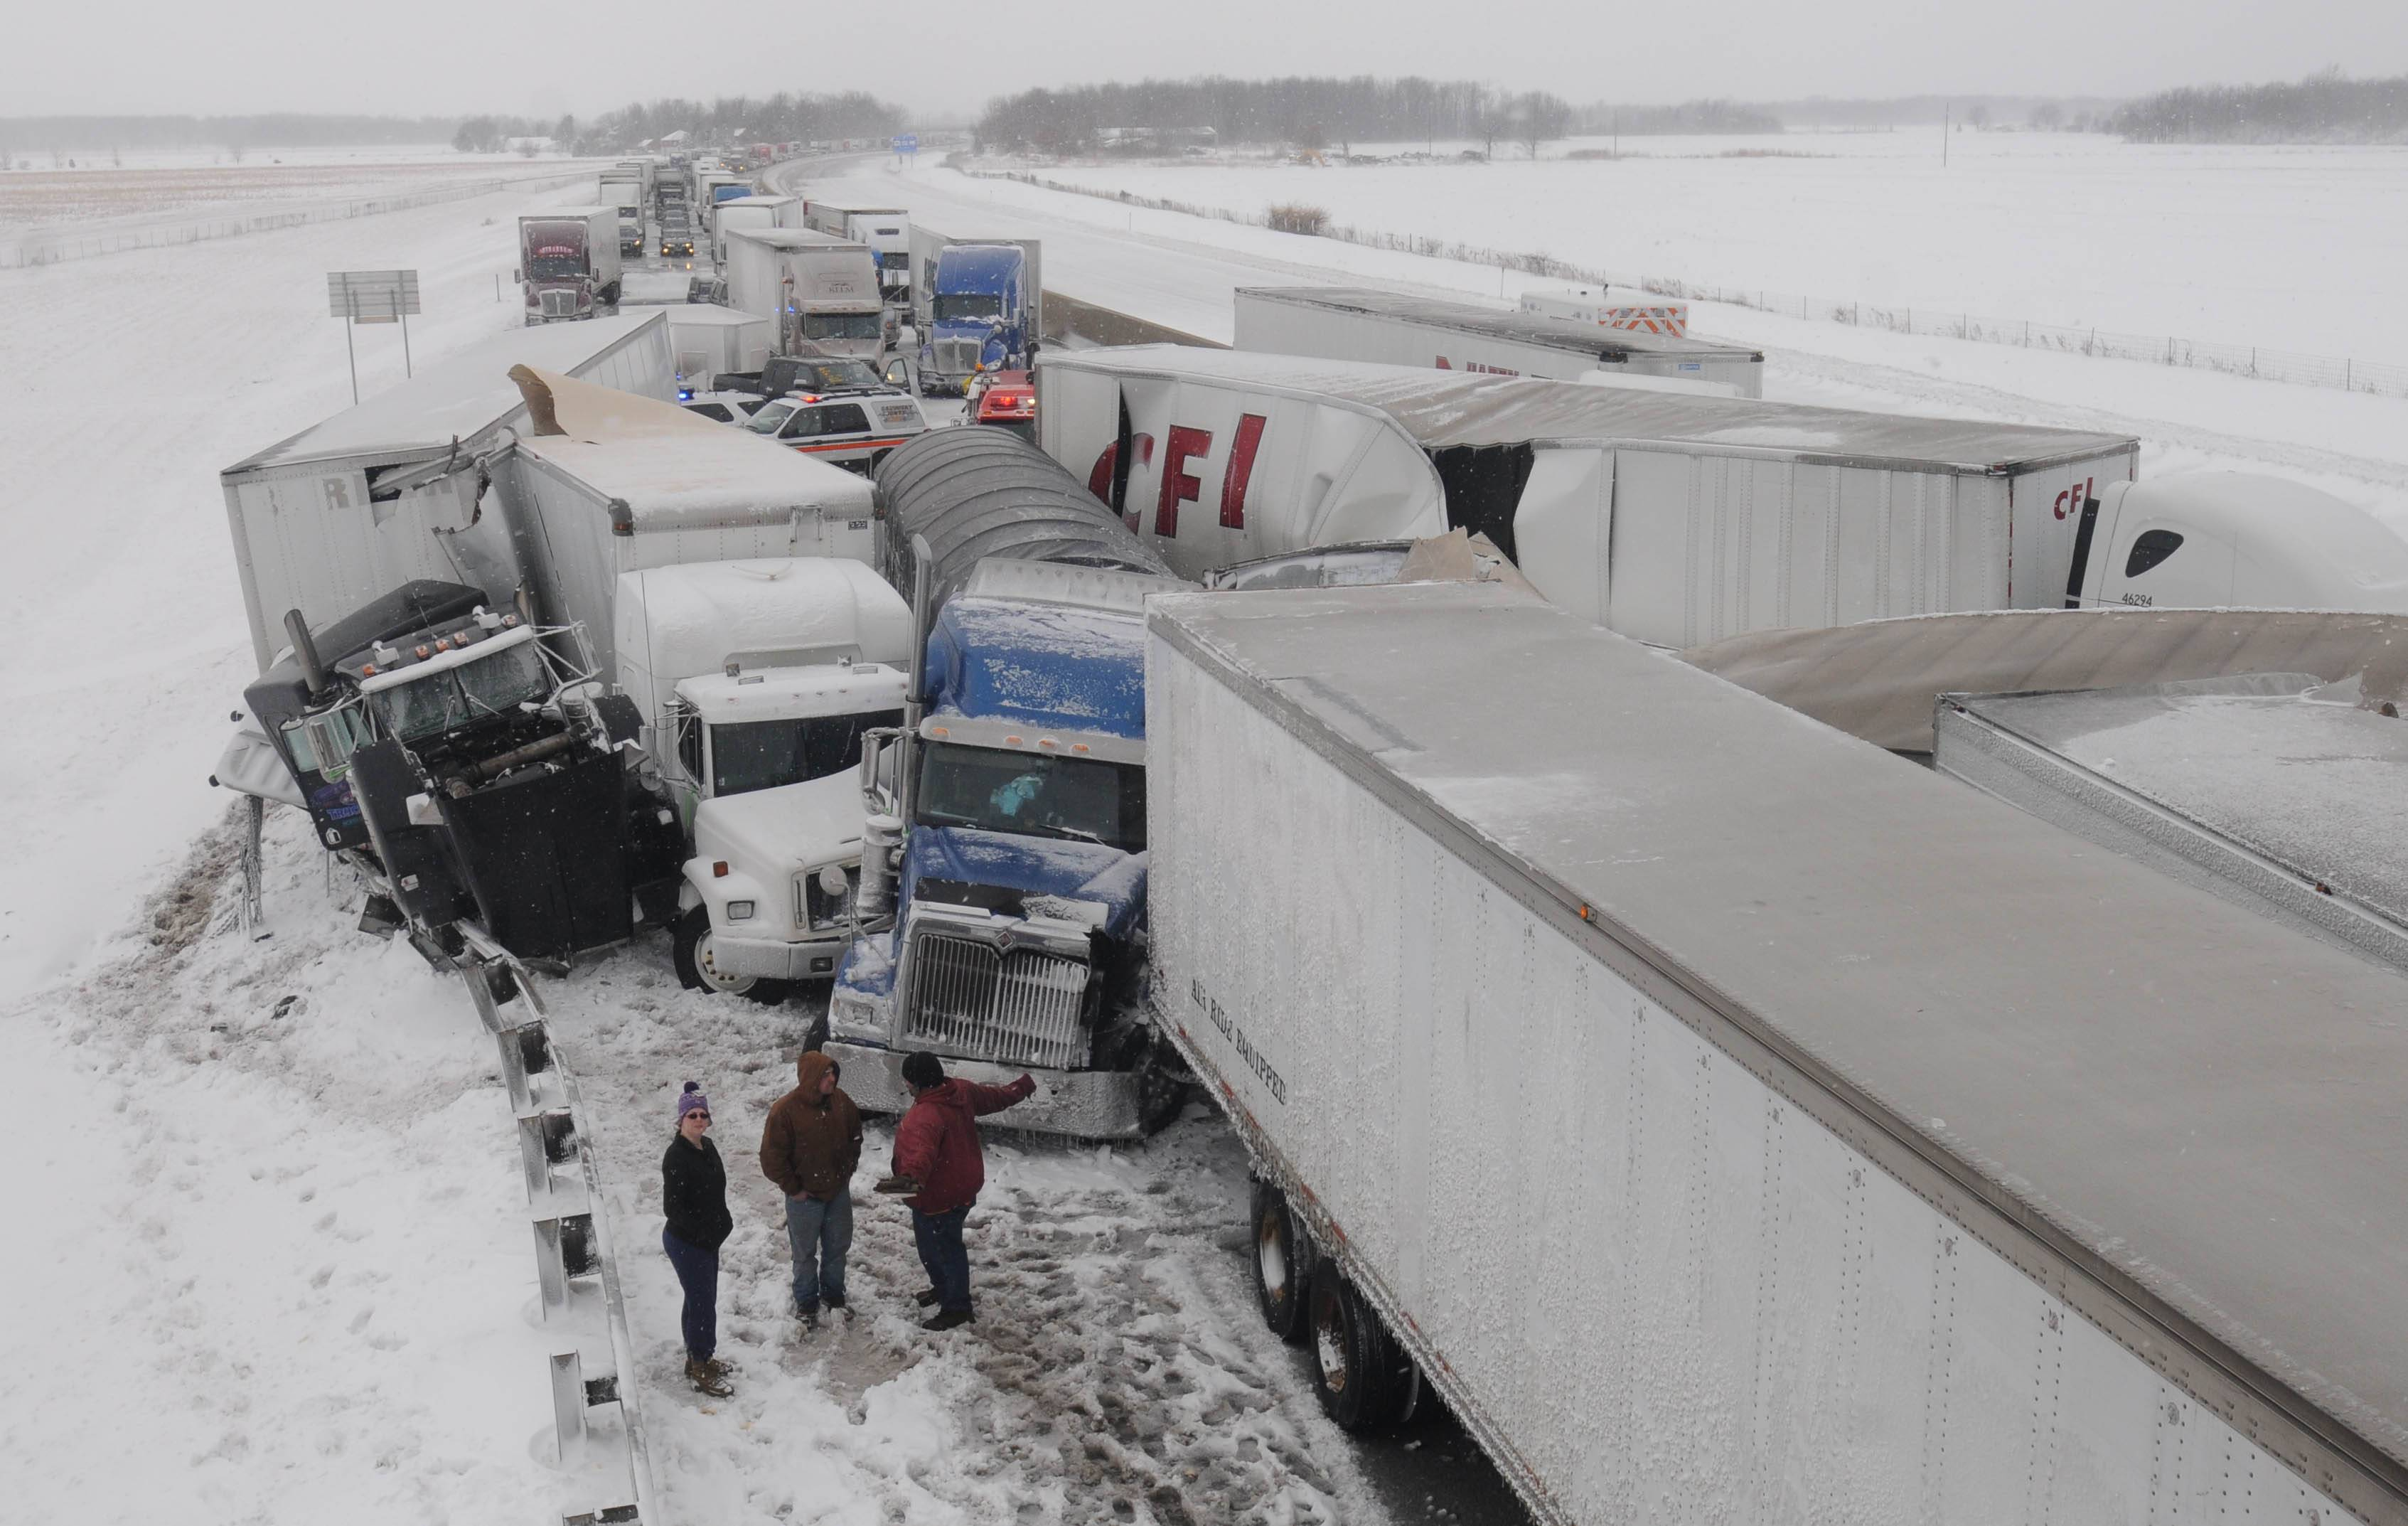 Truck drivers talk at the scene of an accident on the Ohio Turnpike, northeast of Clyde, Ohio, after more than 50 vehicles crashed, Wednesday.